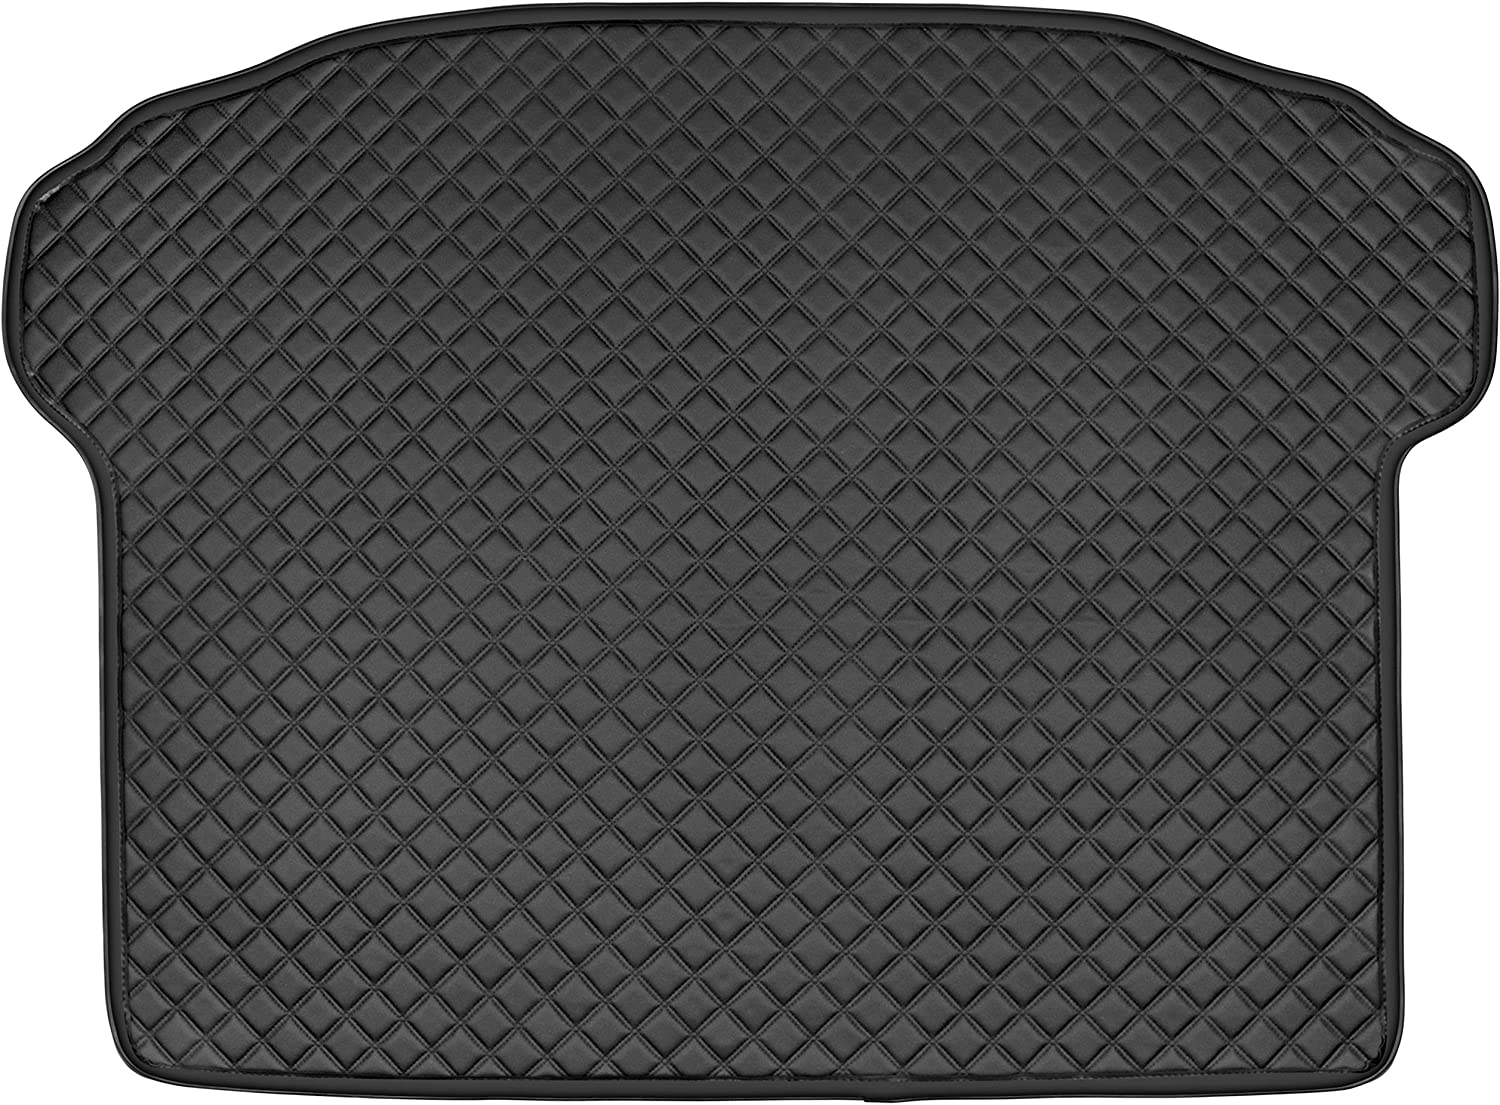 San Auto Cargo Liners Custom Fit for BMW X3 G01 X4 G02 2018 2019 Luxury Leather PU Heavy Duty Leatherette Black Cargo Liner Waterproof Odorless Protector